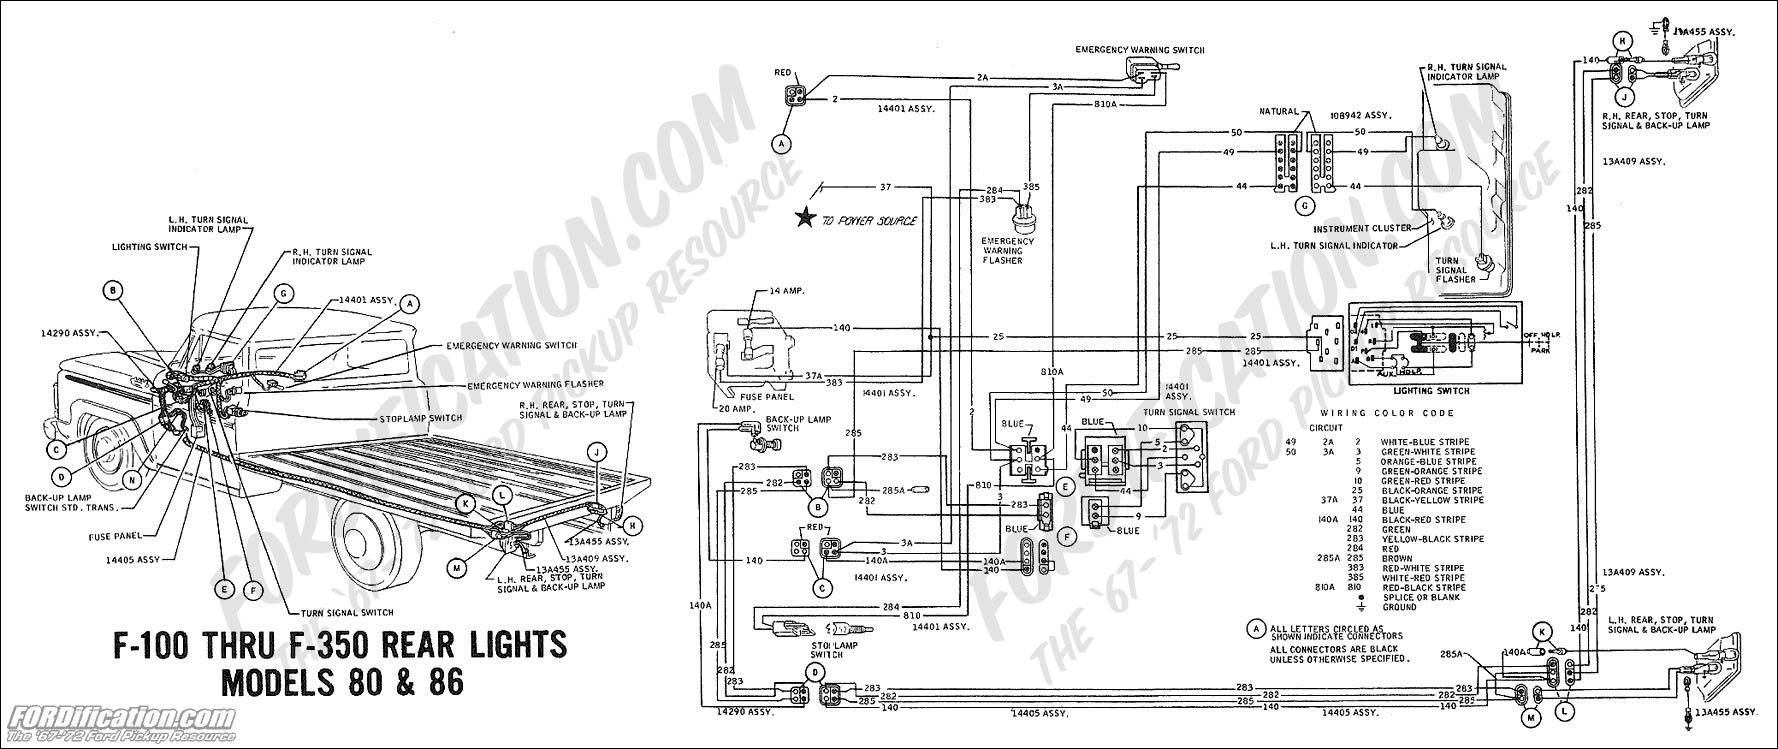 1979 Ford Trucks Parking Light Wiring - Data Wiring Diagram Today  Ford Bronco Wiring Diagram on 1981 ford bronco wiring diagram, 1977 ford bronco wiring diagram, 1992 ford bronco wiring diagram, 1987 ford bronco wiring diagram, 1977 ford f-100 wiring diagram, 1968 ford falcon wiring diagram, 78 ford bronco wiring diagram, 72 ford steering column wiring diagram, 1974 ford bronco wiring diagram, 1973 ford bronco wiring diagram, 1966 ford bronco wiring diagram, 1965 ford galaxie 500 wiring diagram, 1969 ford galaxie 500 wiring diagram, 1976 ford bronco seats, 1968 ford bronco wiring diagram, 1985 ford bronco wiring diagram, 1990 ford bronco wiring diagram, ford bronco aftermarket wiring diagram, 1976 ford bronco fuel tank, 1984 ford bronco wiring diagram,